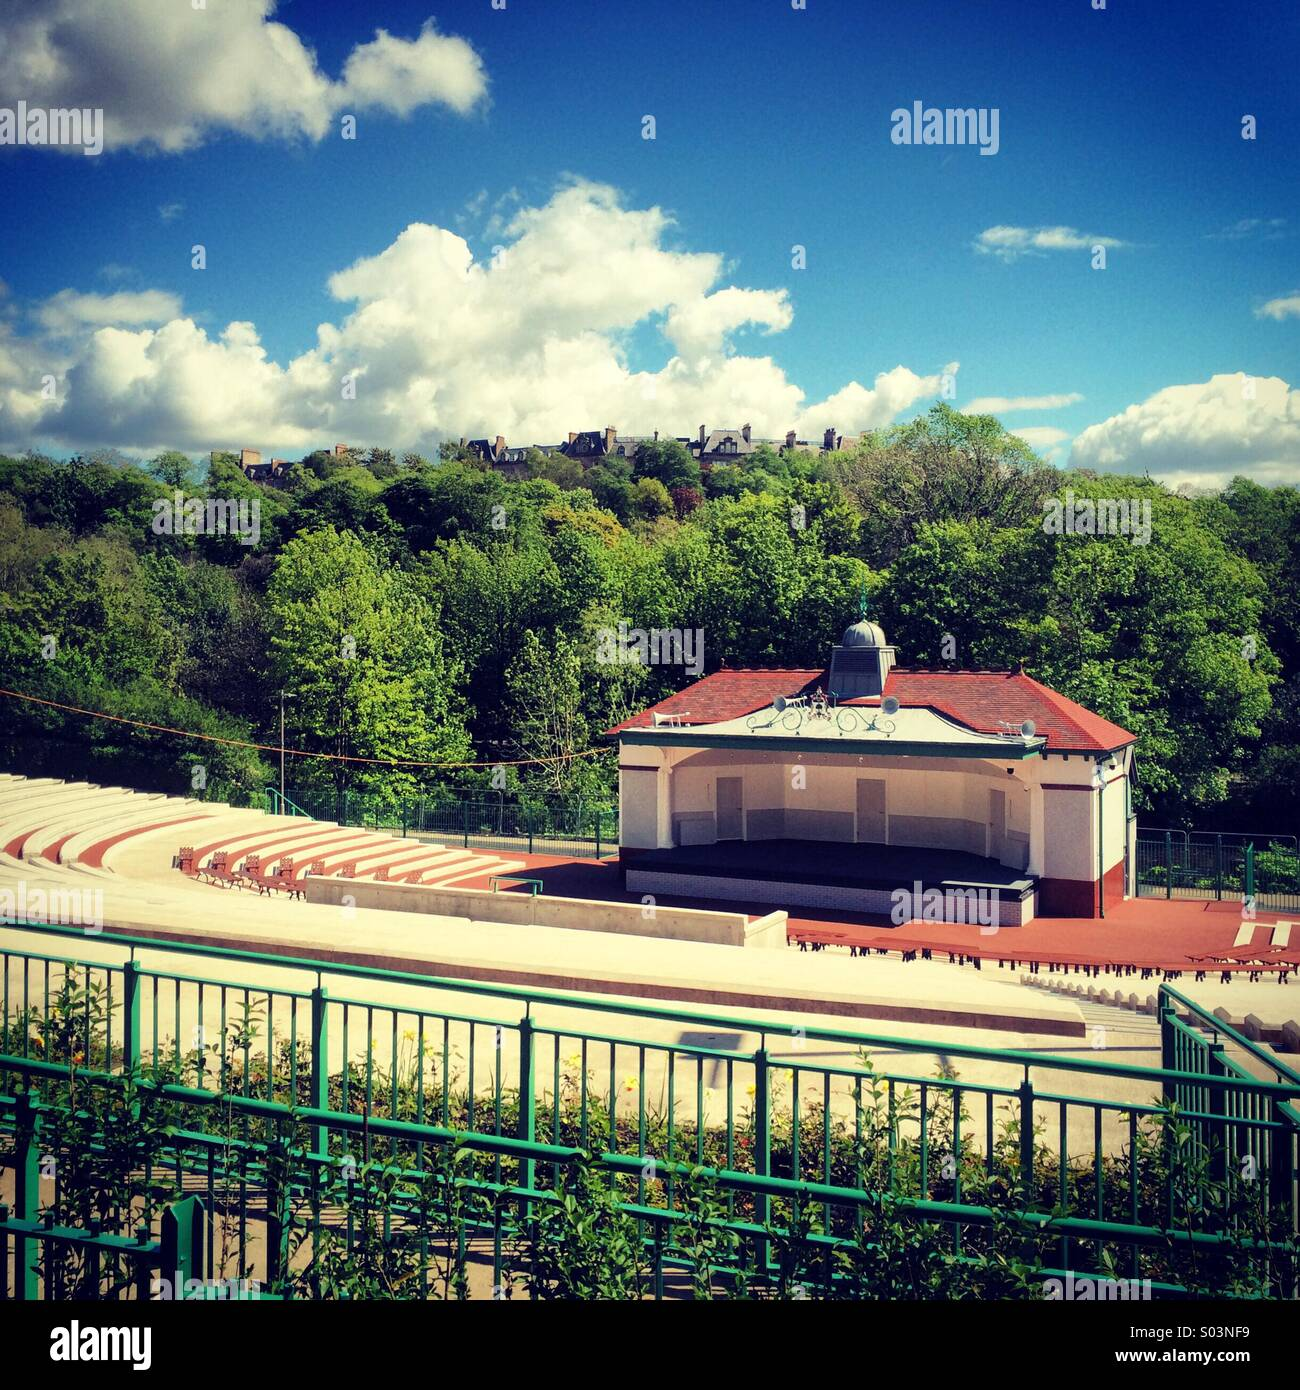 The newly refurbished kelvin grove bandstand - Stock Image